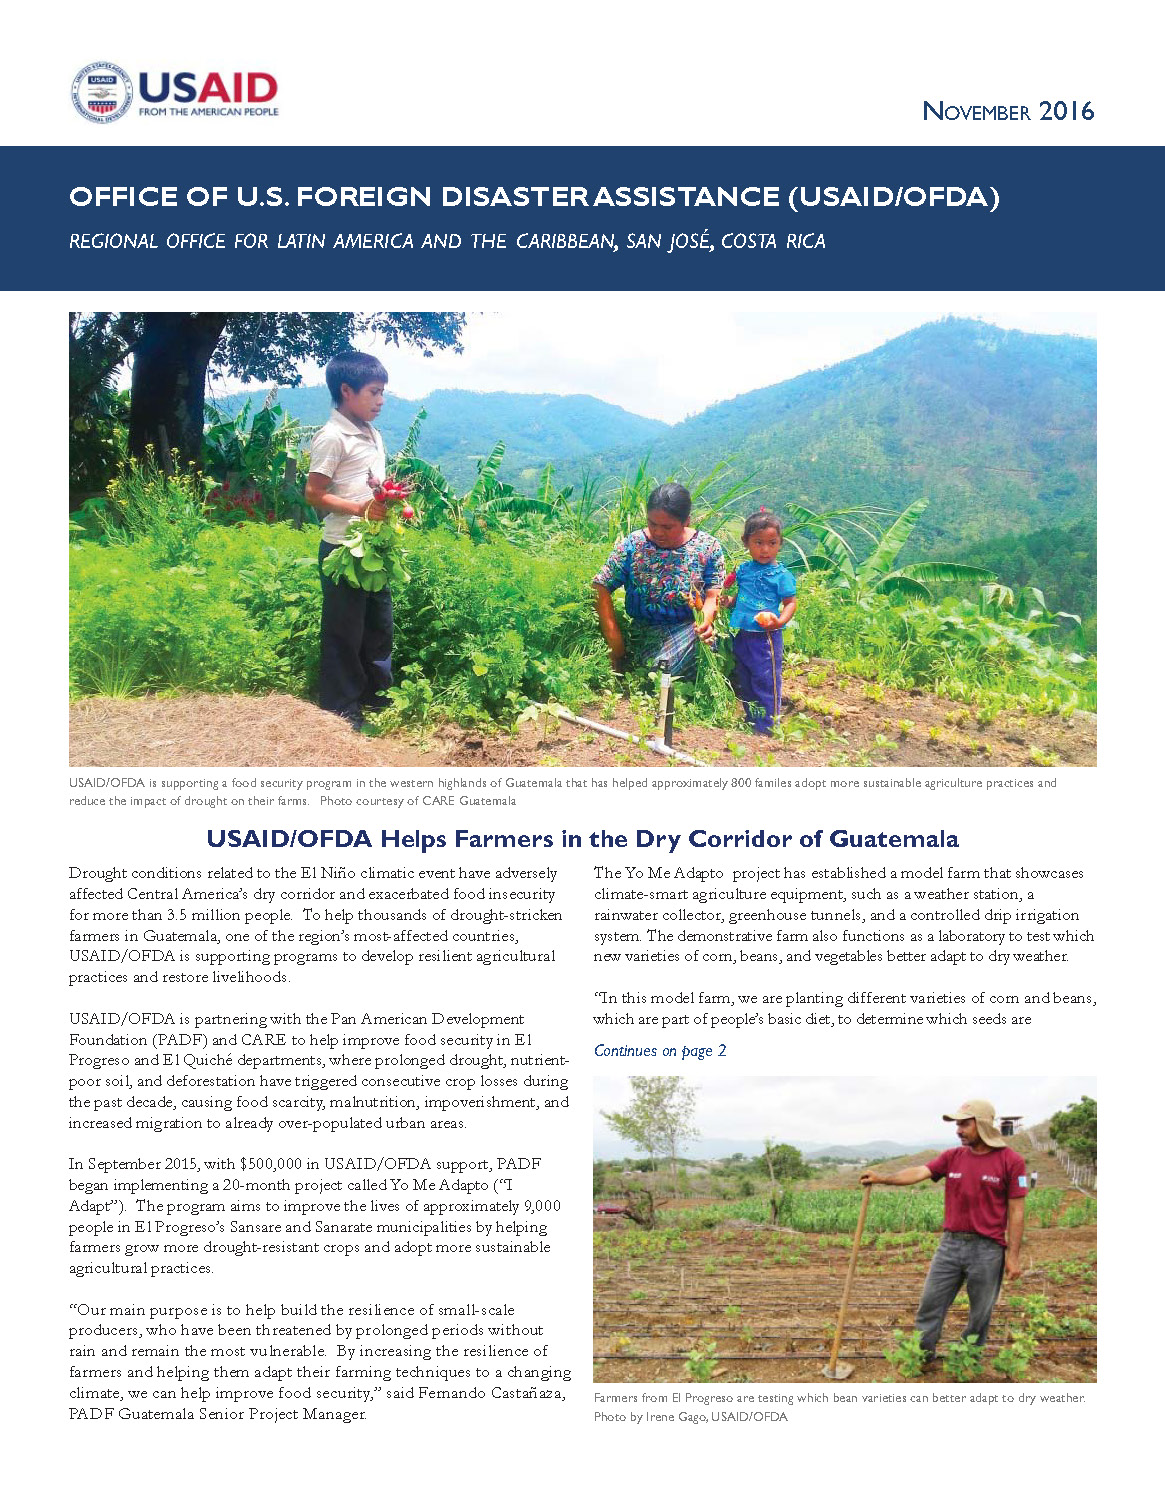 OFDA LAC Newsletter November 2016_Page_1.jpg